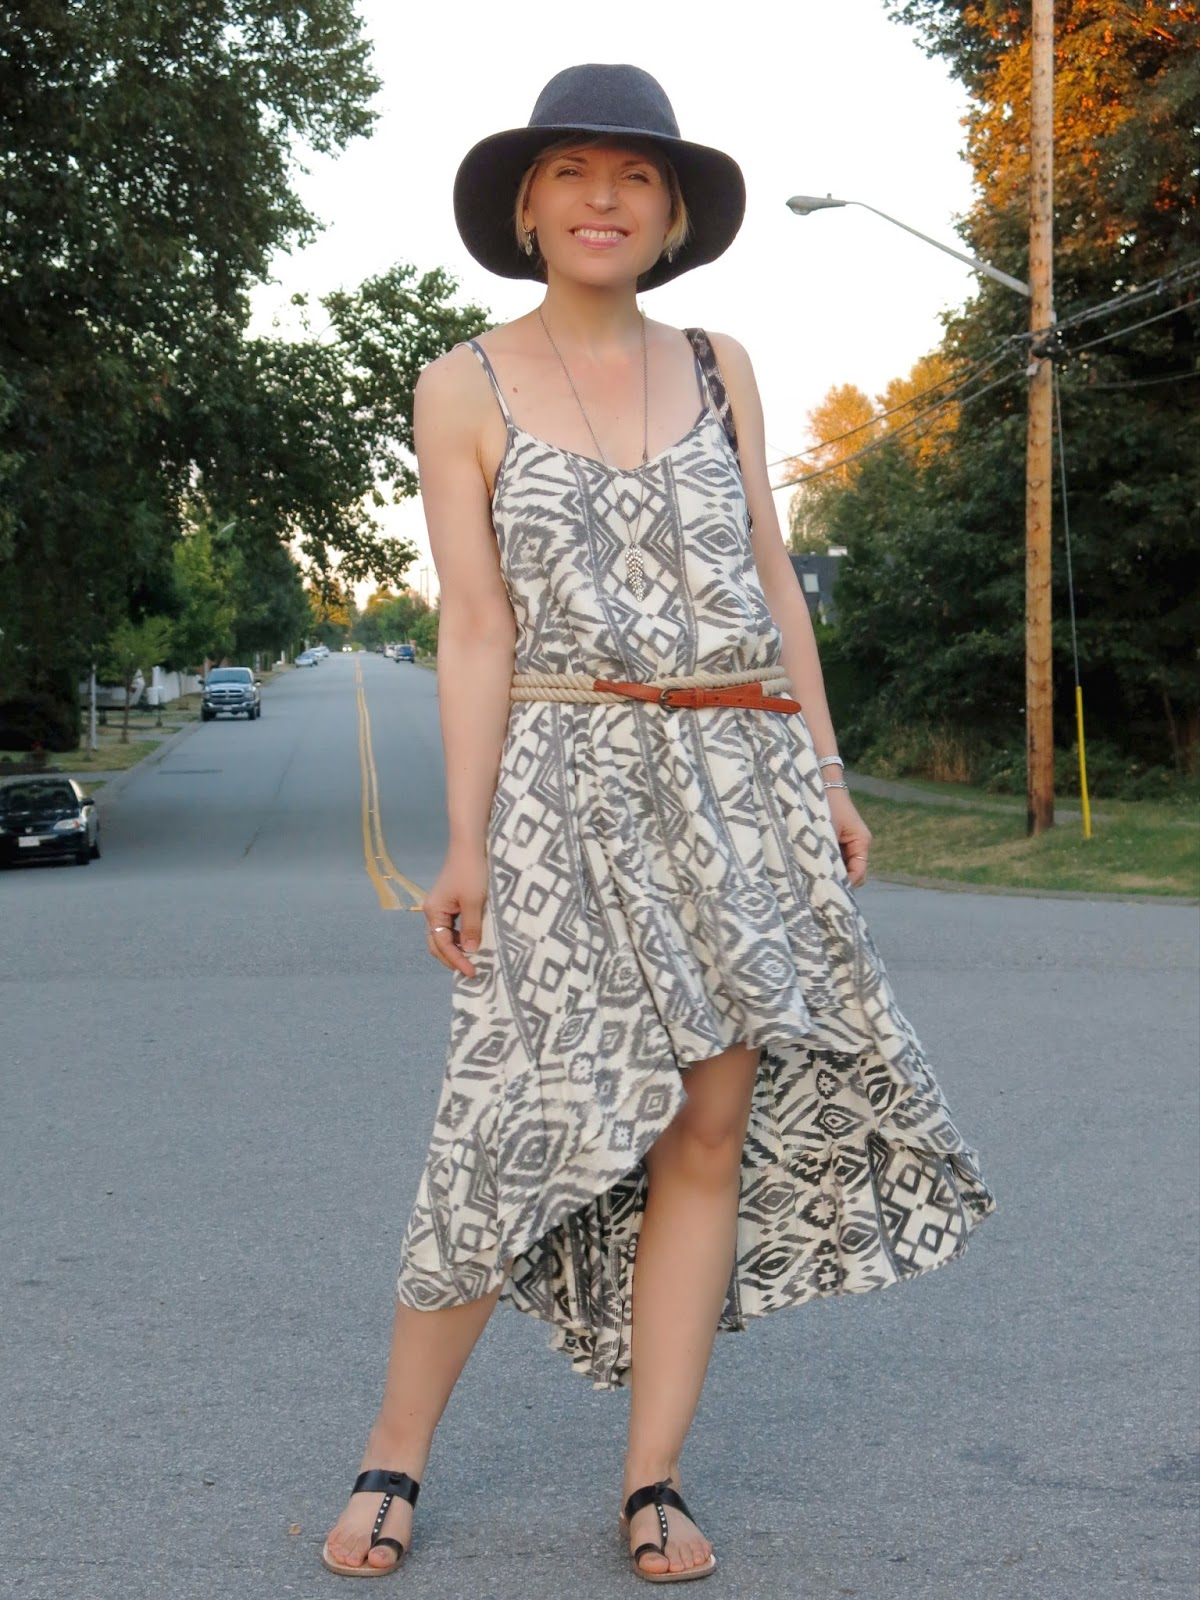 styling a high-low sundress with a double-wrap belt, floppy hat, and thong sandals